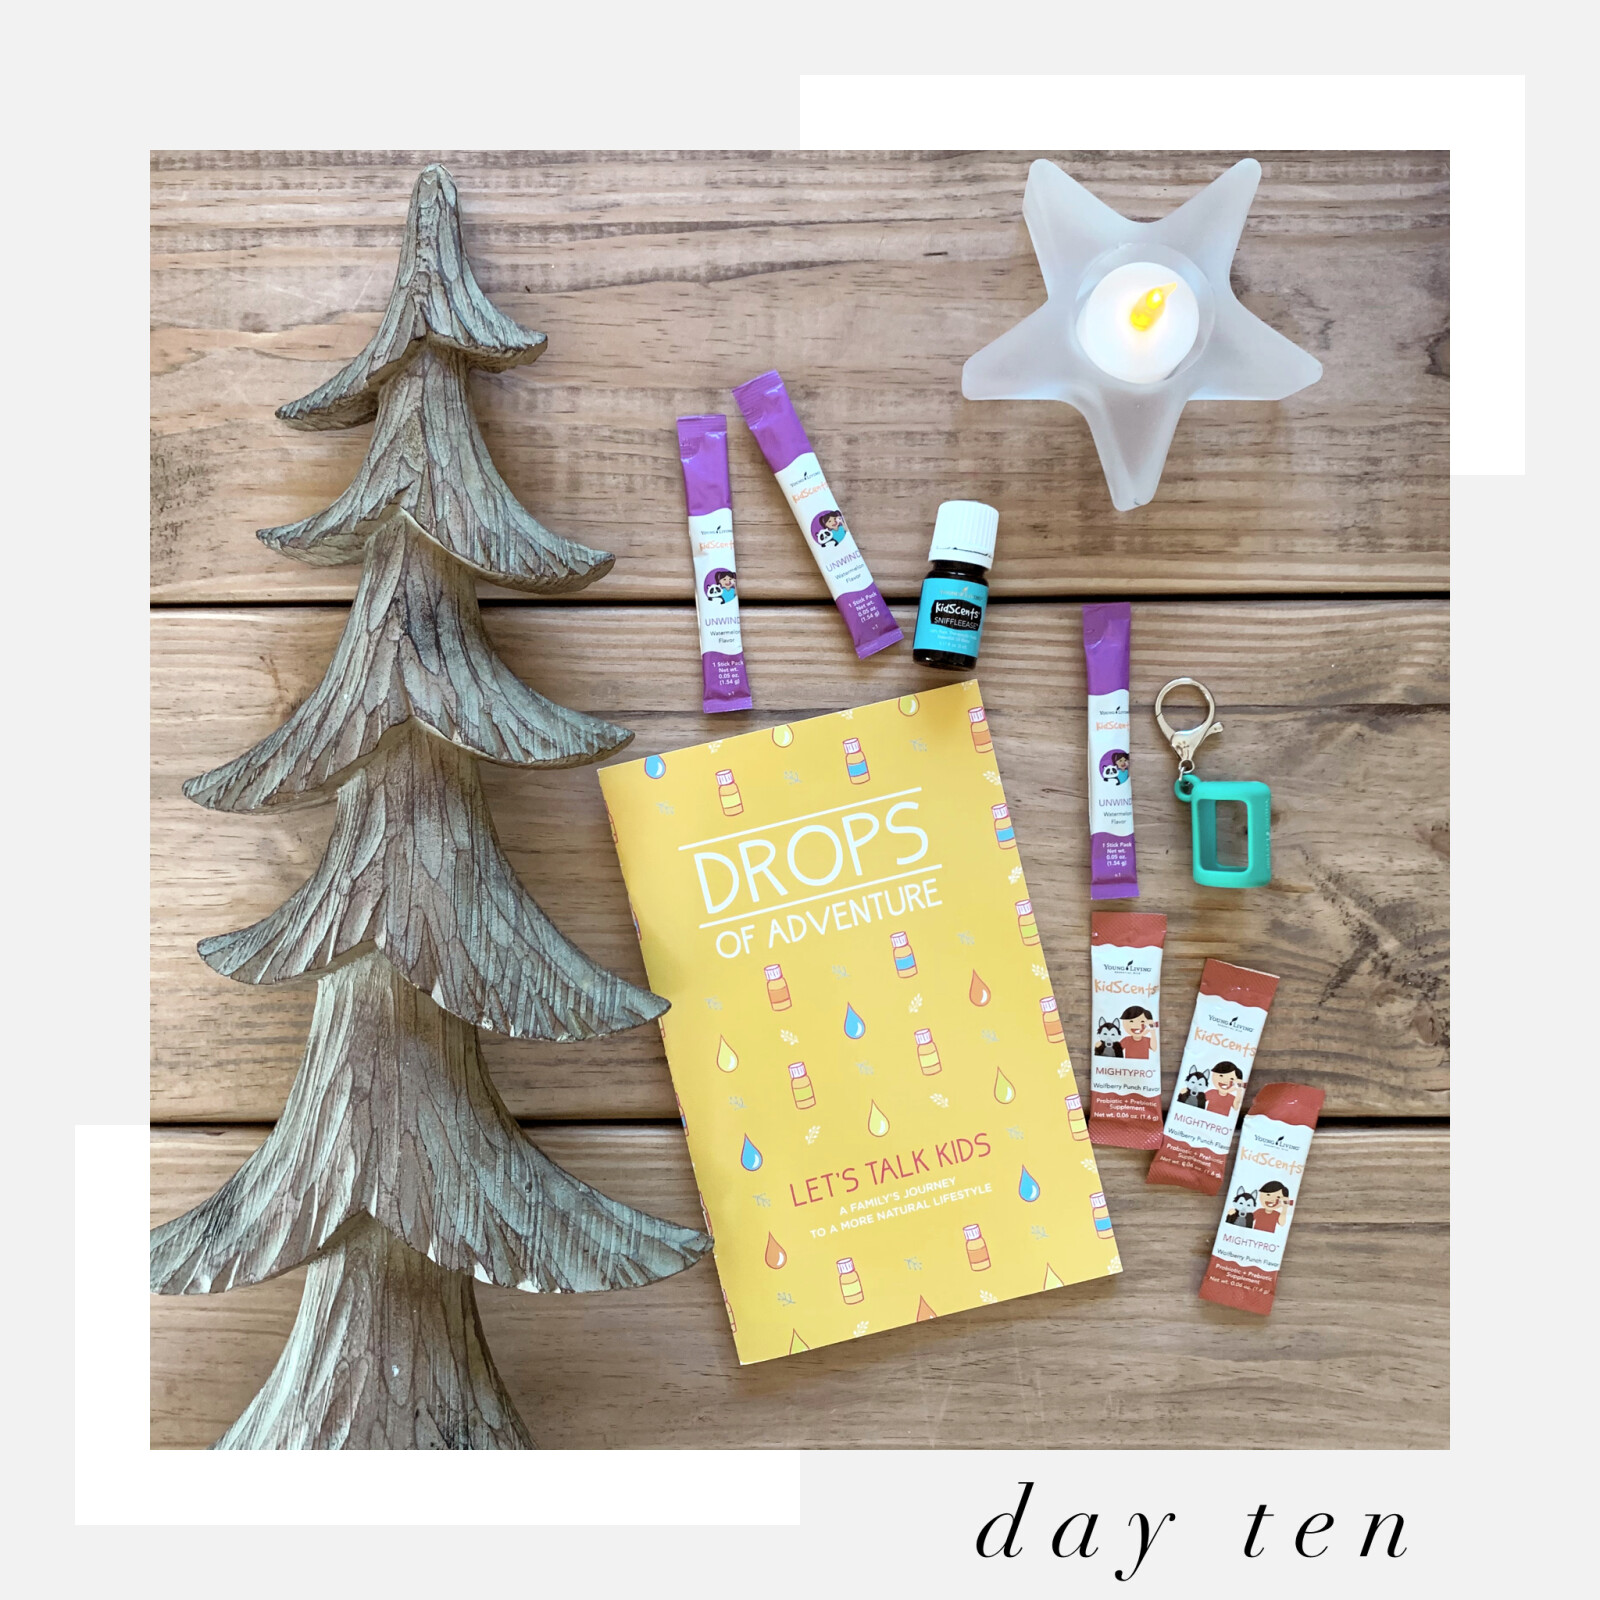 12 Days of Giveaways: Day 10 - Drops of Adventure